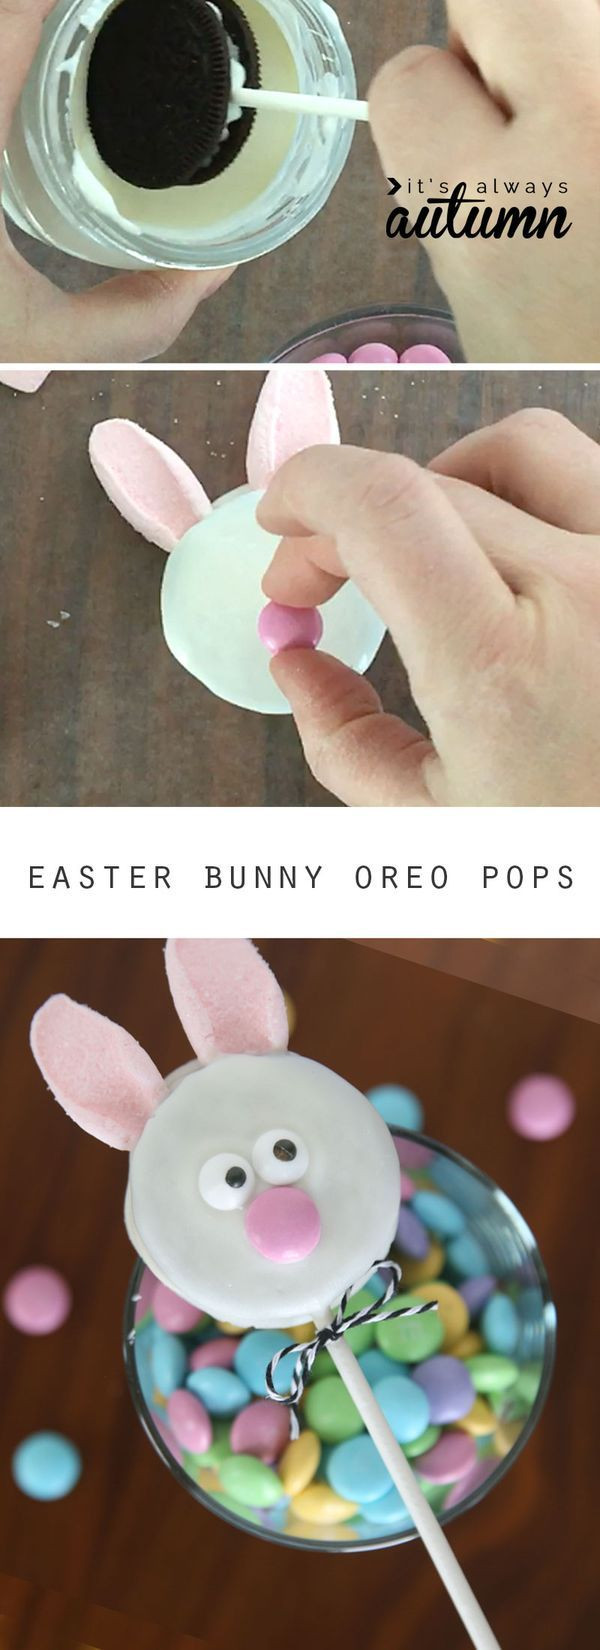 122 best easter desserts images on pinterest easter recipes easy easter bunny chick oreo pops negle Images